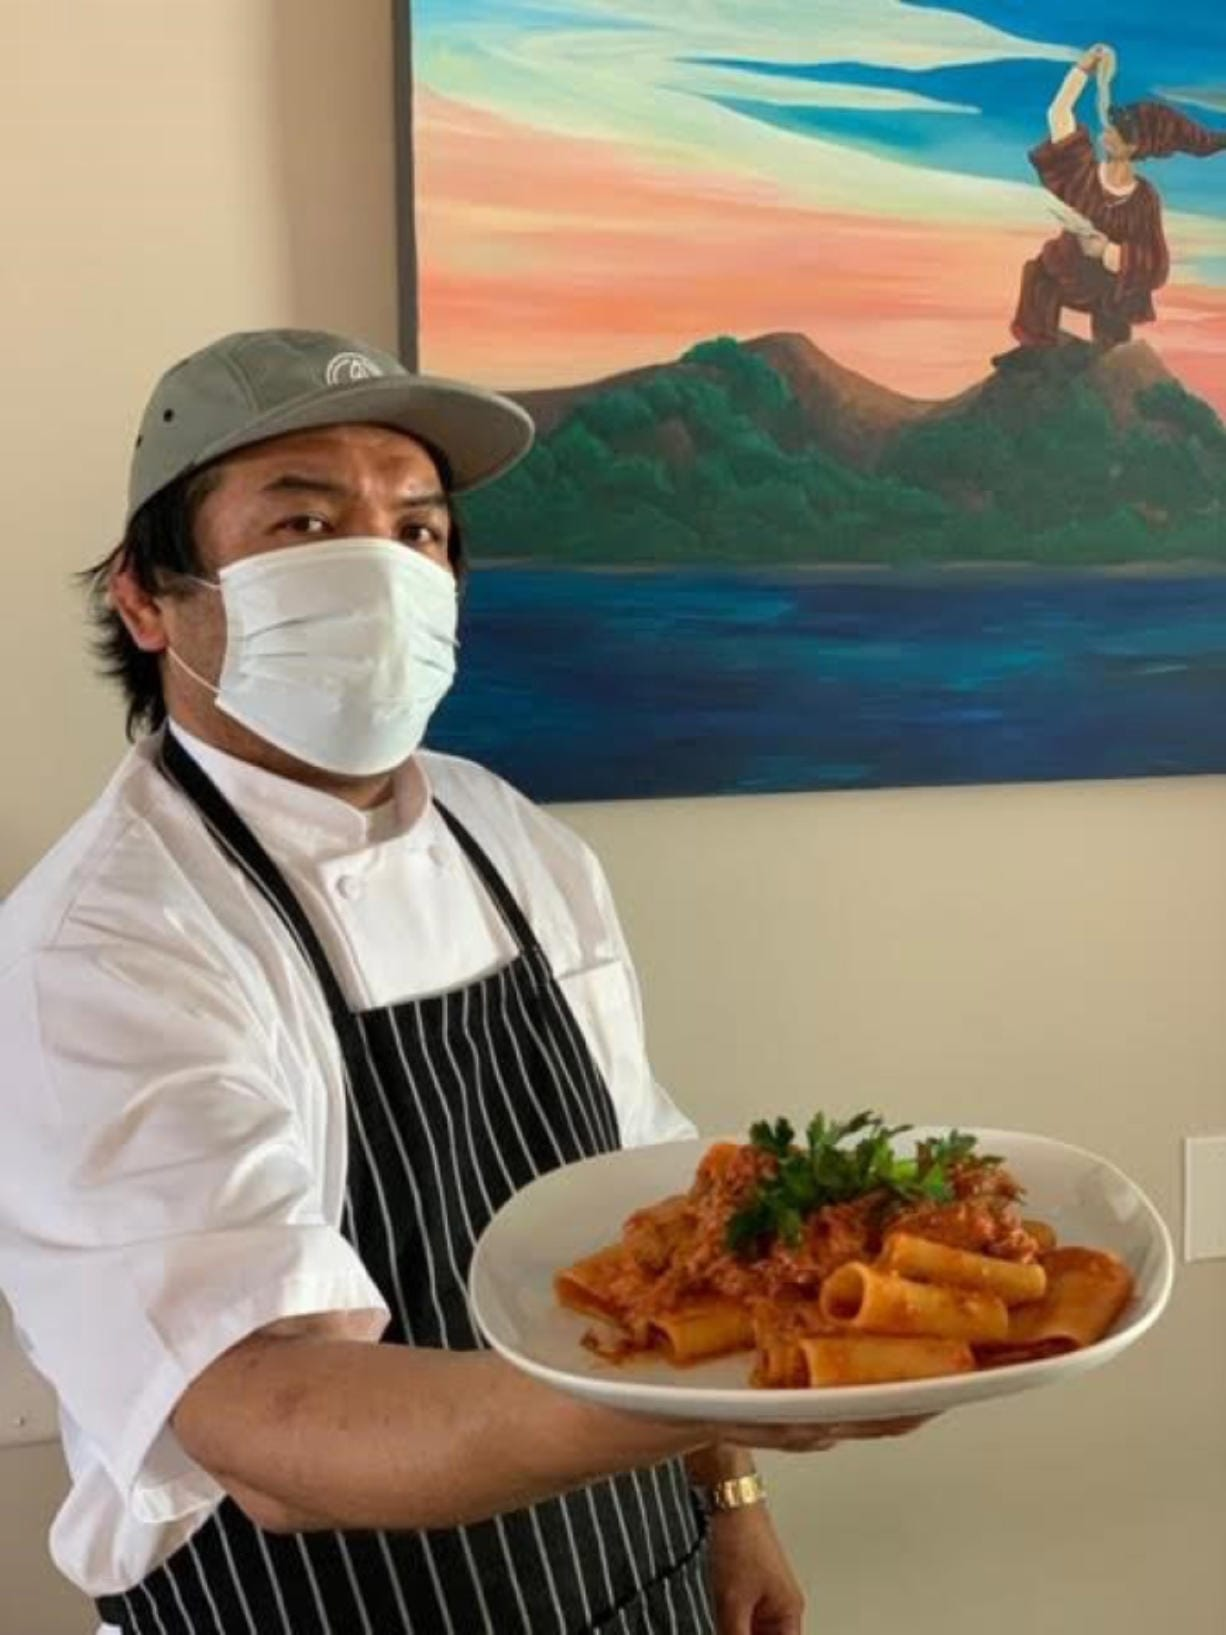 Chef Daisuke Matsumoto barely opened La Sorrentina before the pandemic shutdown hit.